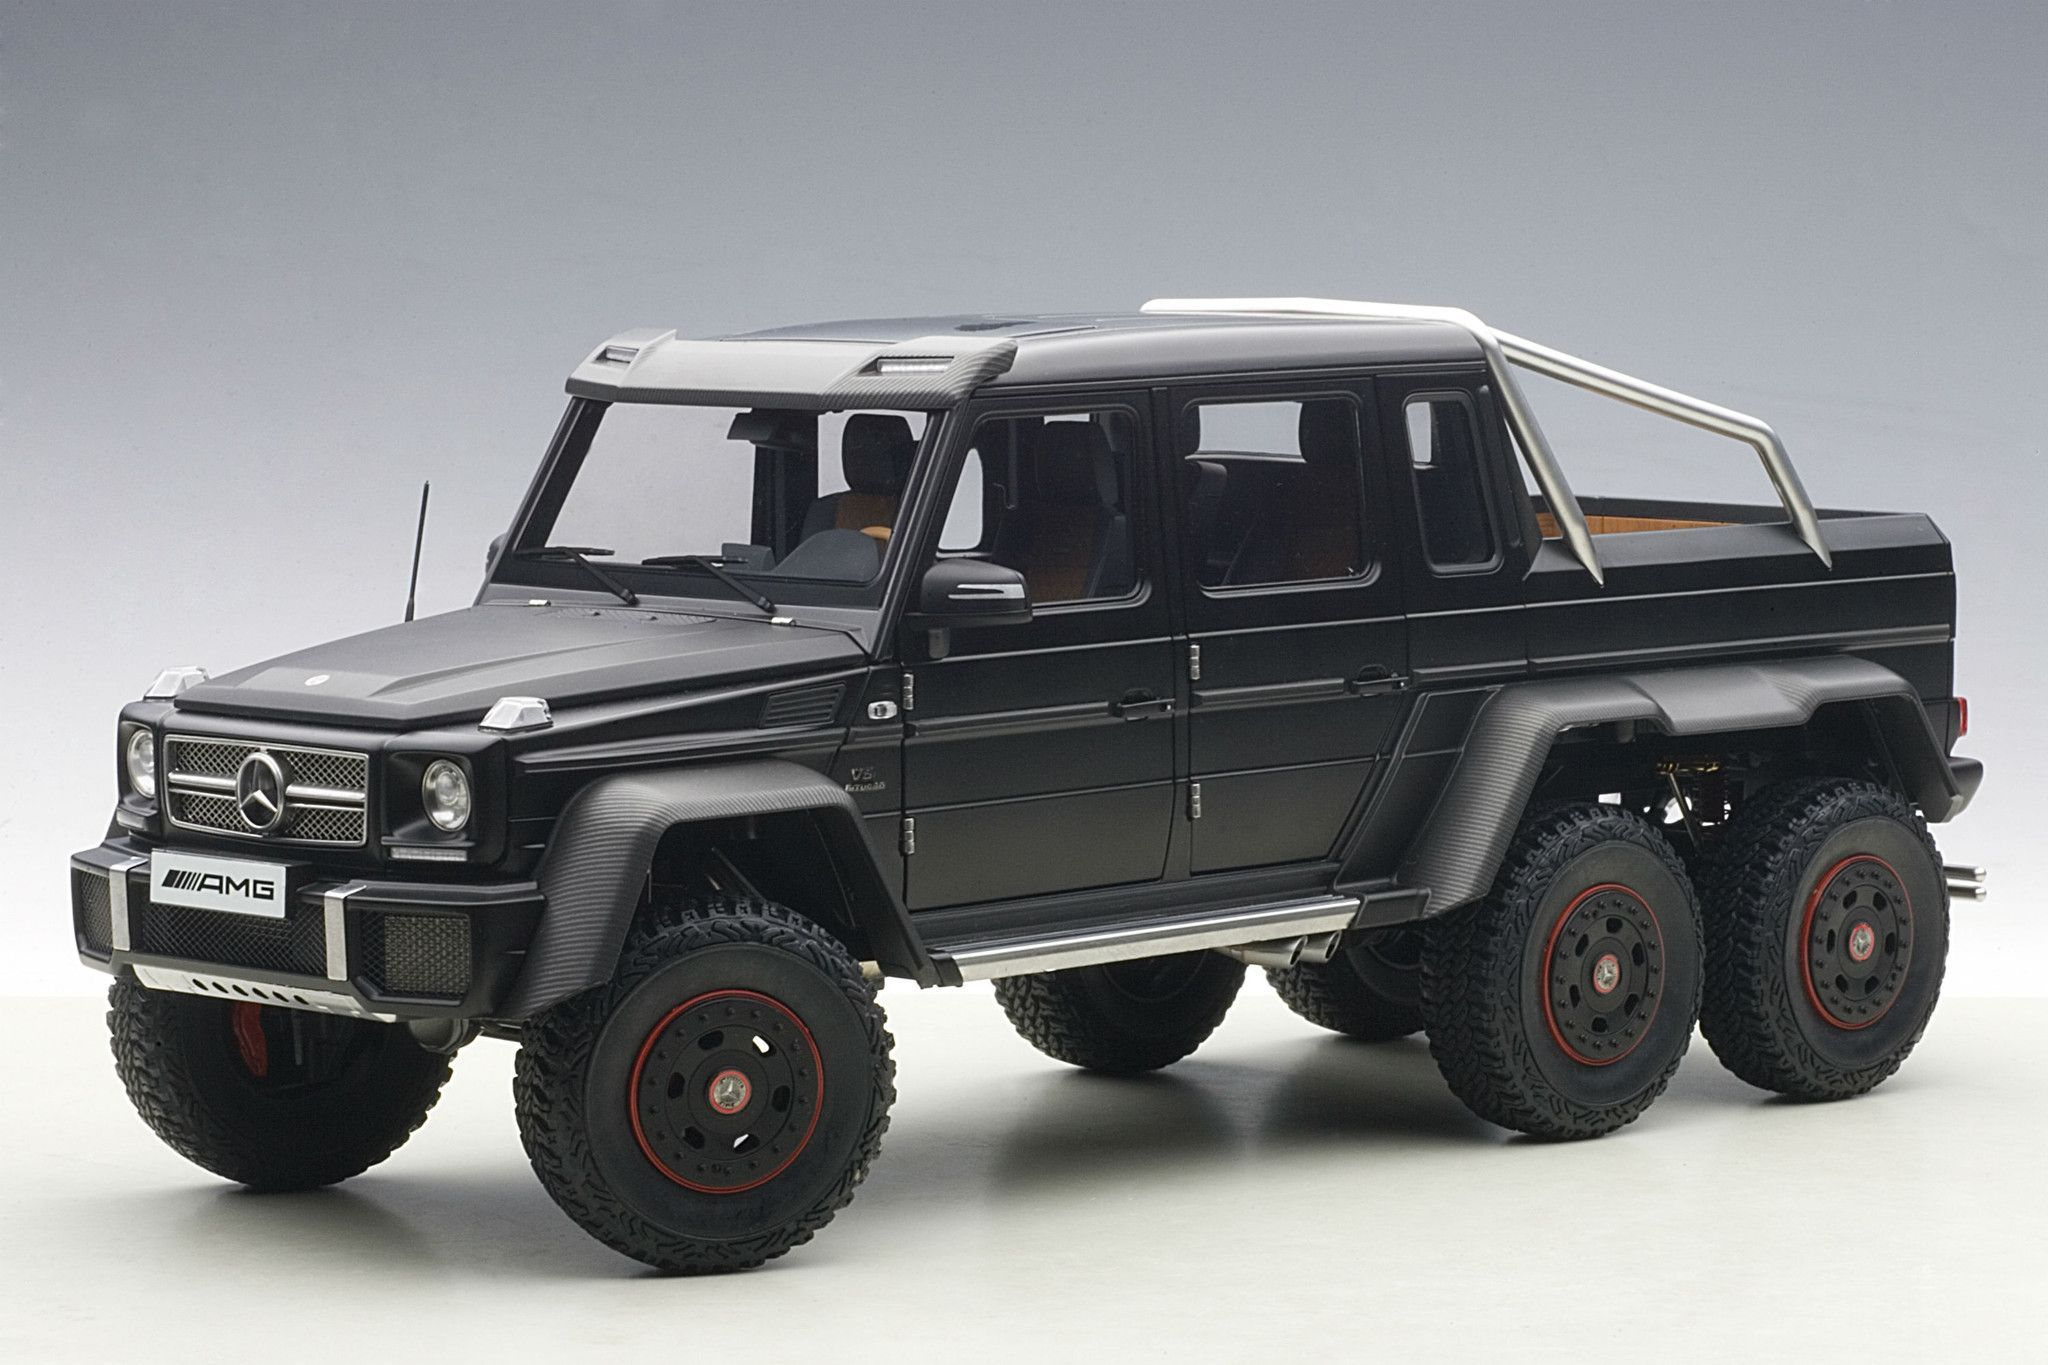 Mercedes-Benz refers to their forthcoming G63 AMG 6x6 as